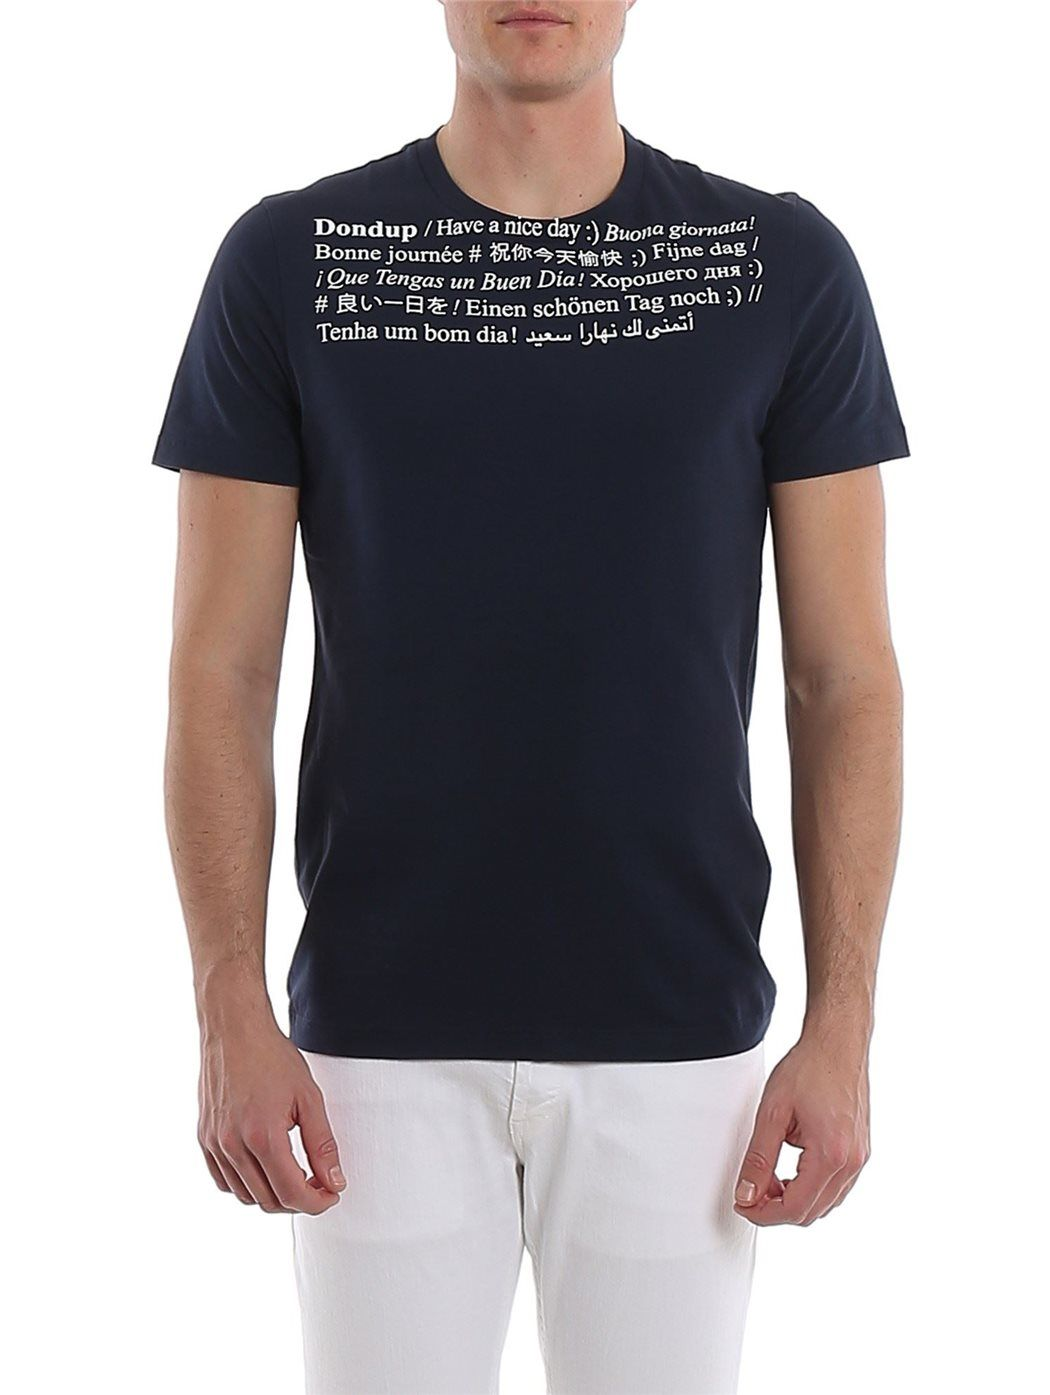 DONDUP US198 DU890 T-SHIRT